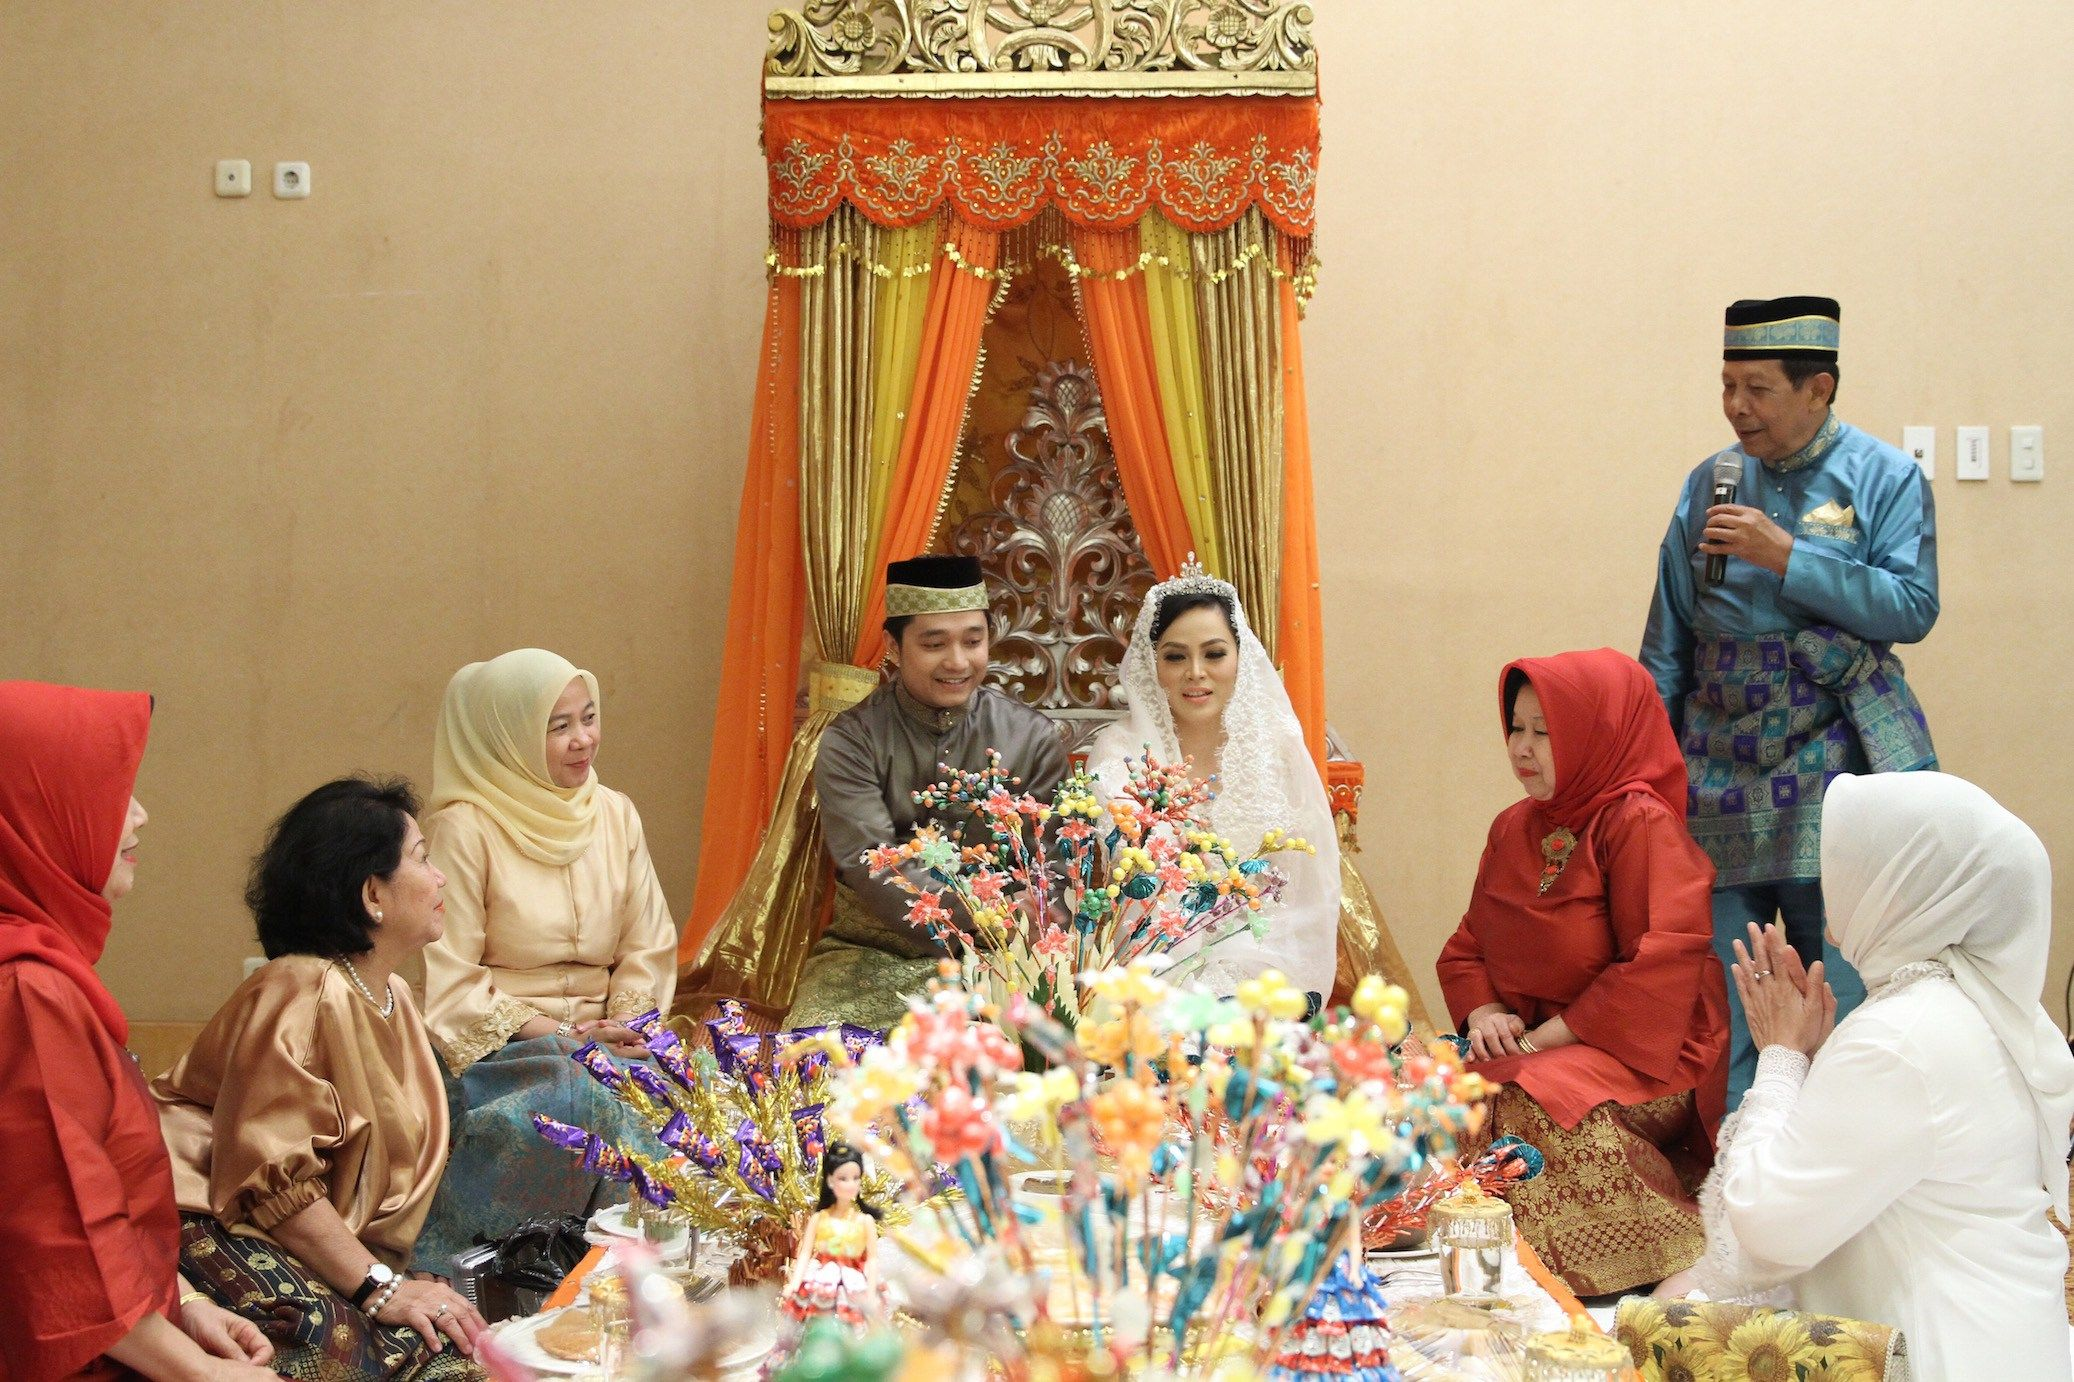 Pernikahan Adat Melayu Deli Nina dan Zakie  The Wedding  The